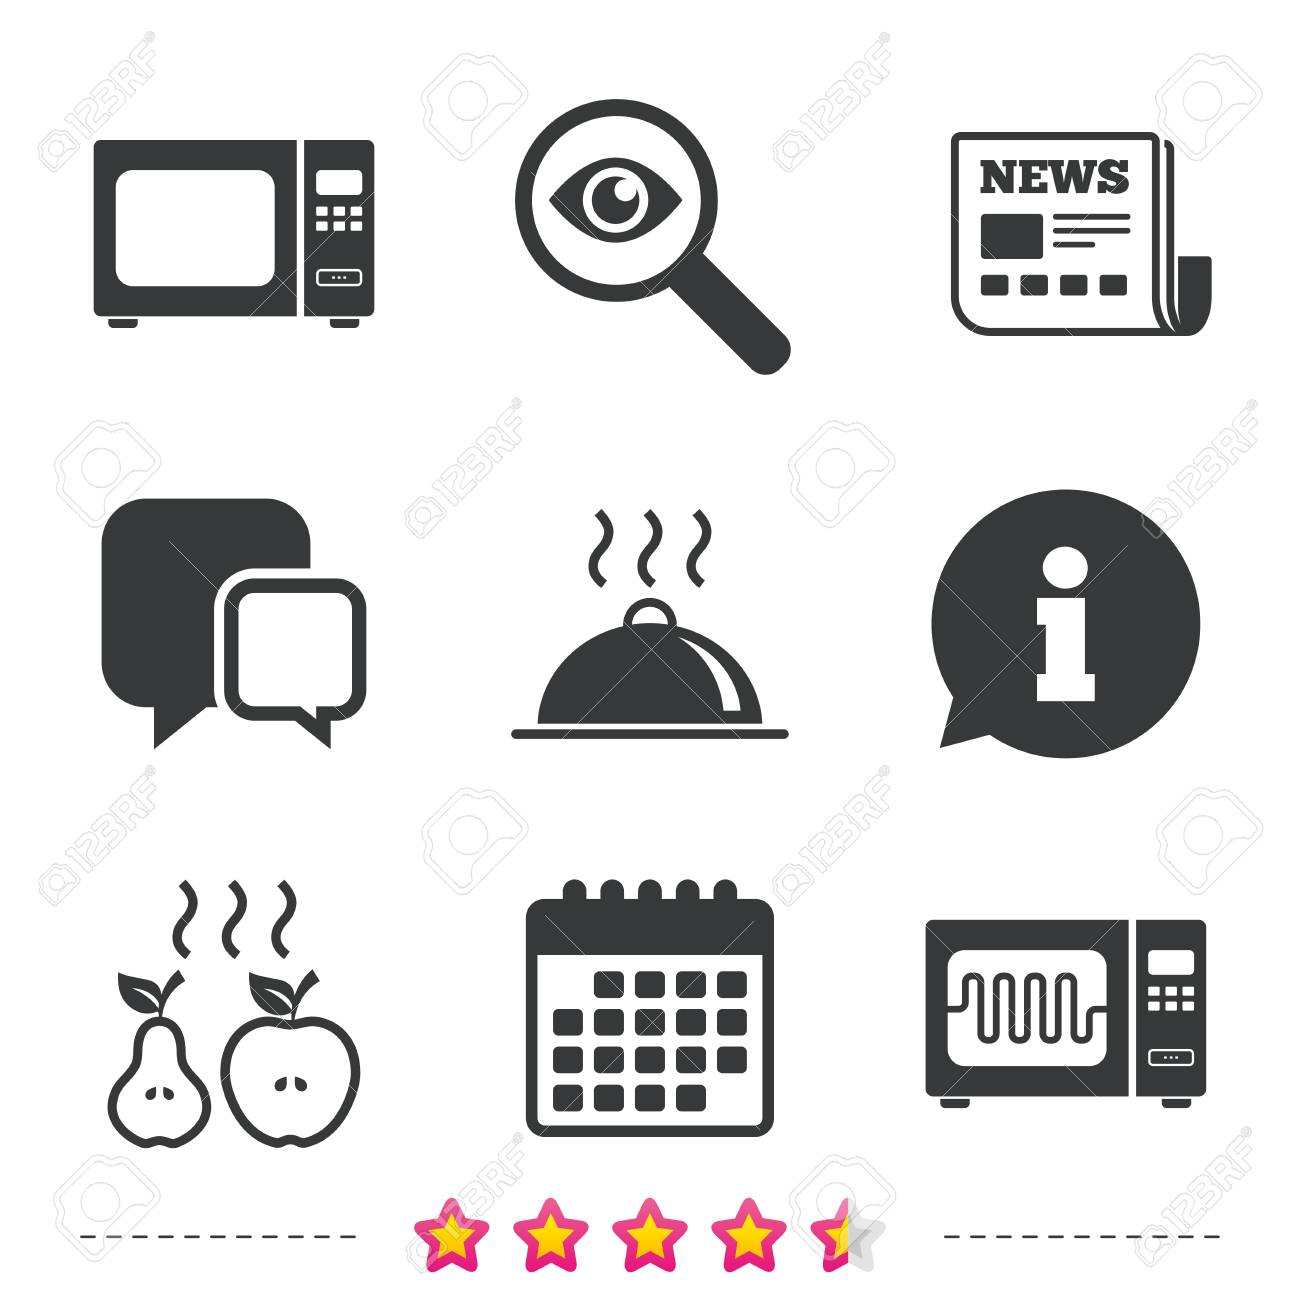 Microwave Grill Oven Icons Cooking Apple And Pear Signs Food